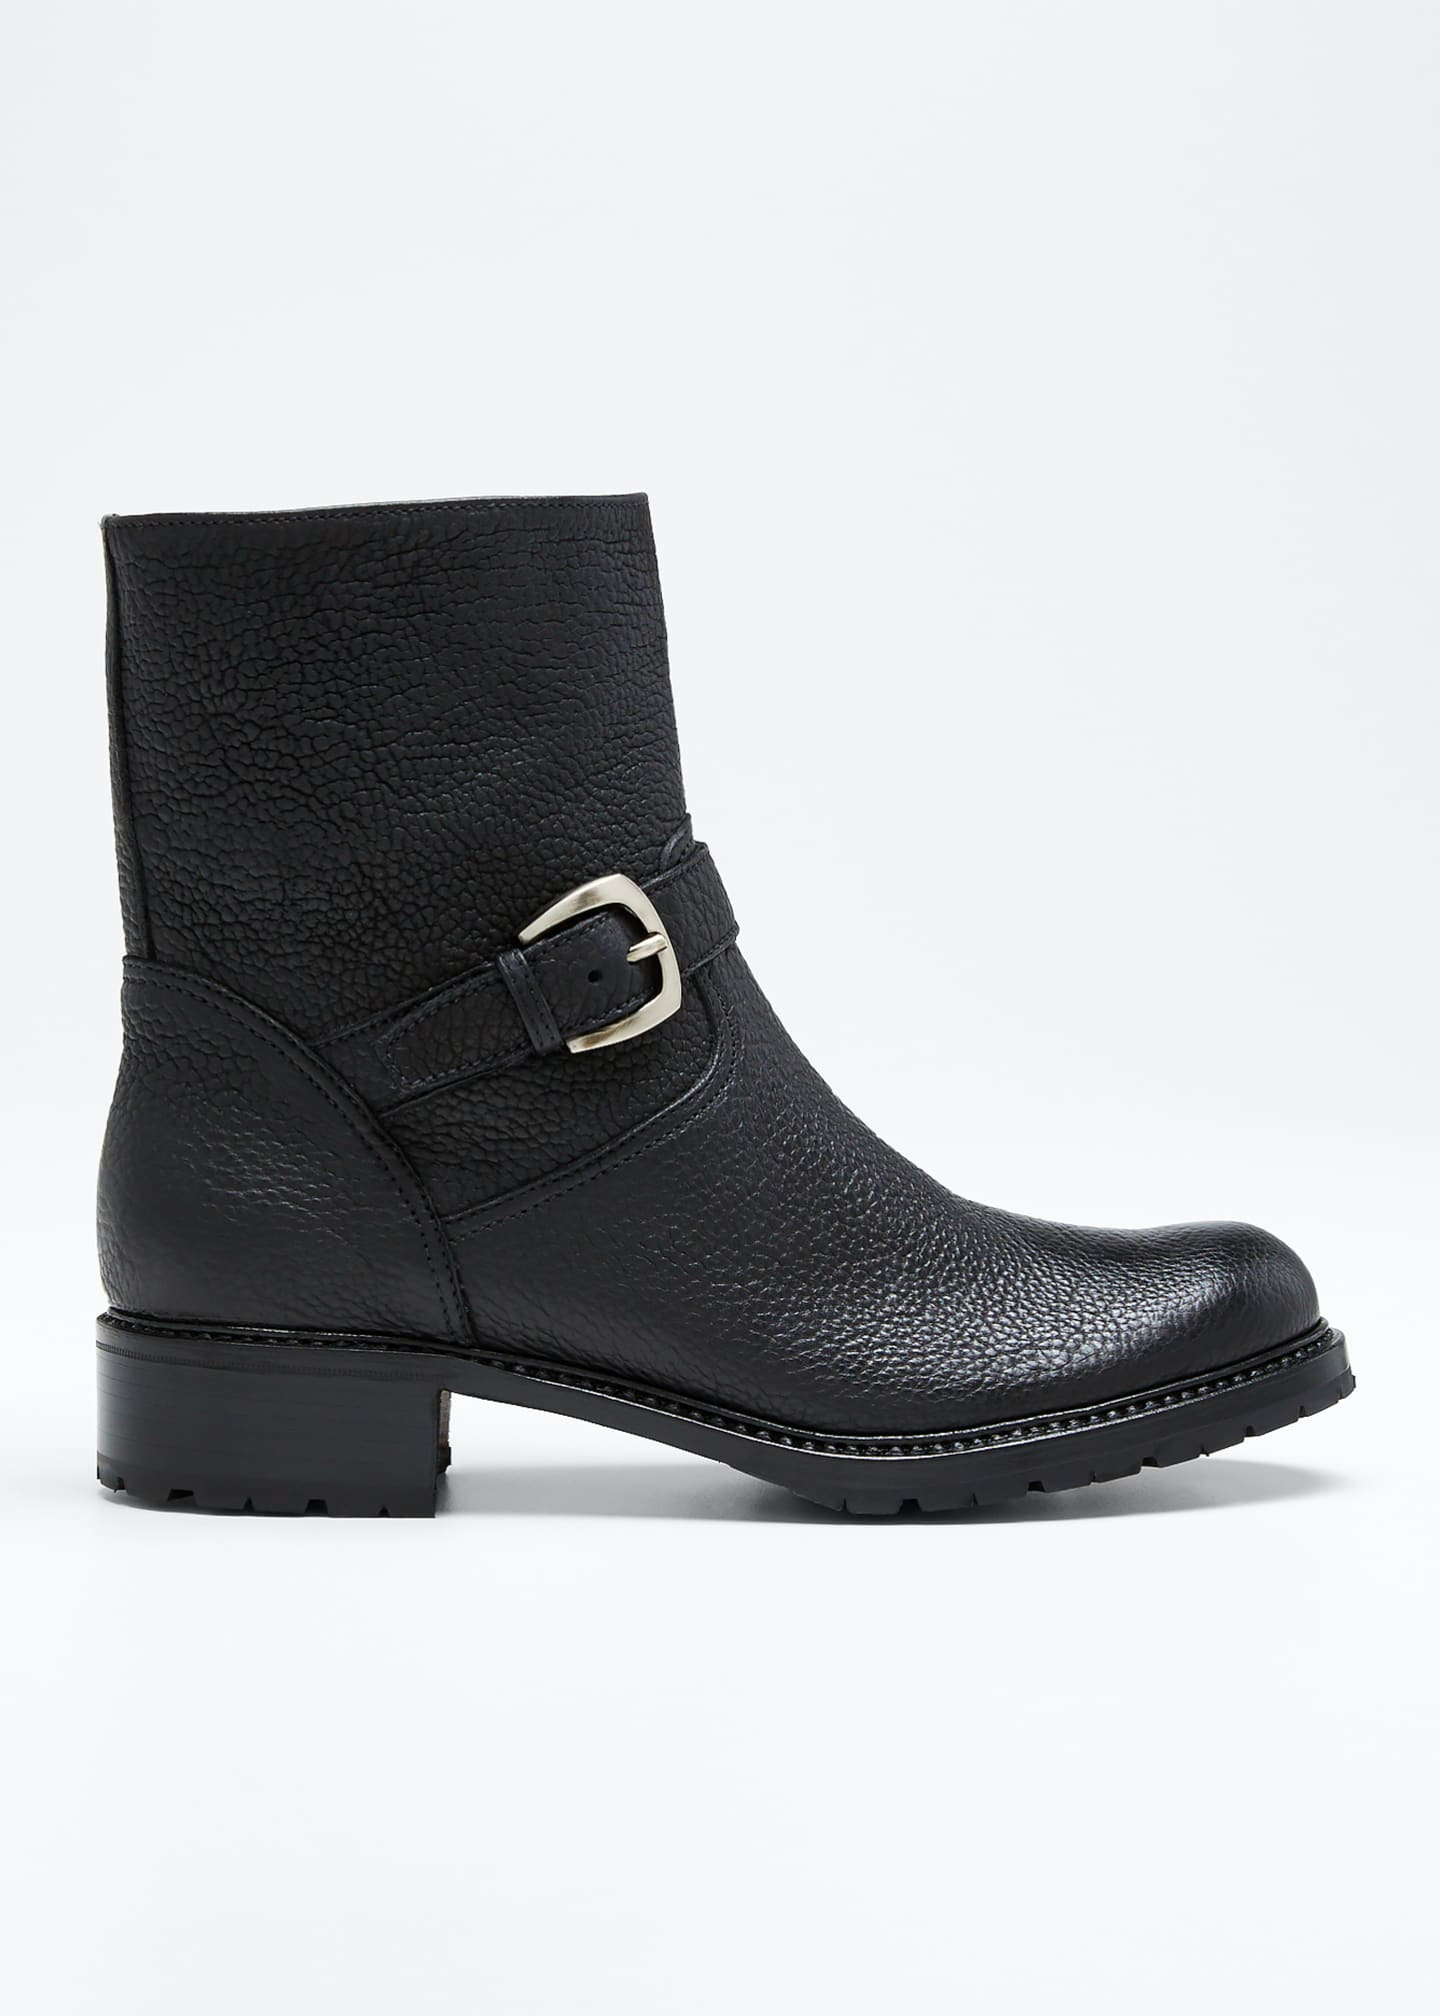 Gravati Leather Buckle Moto Booties